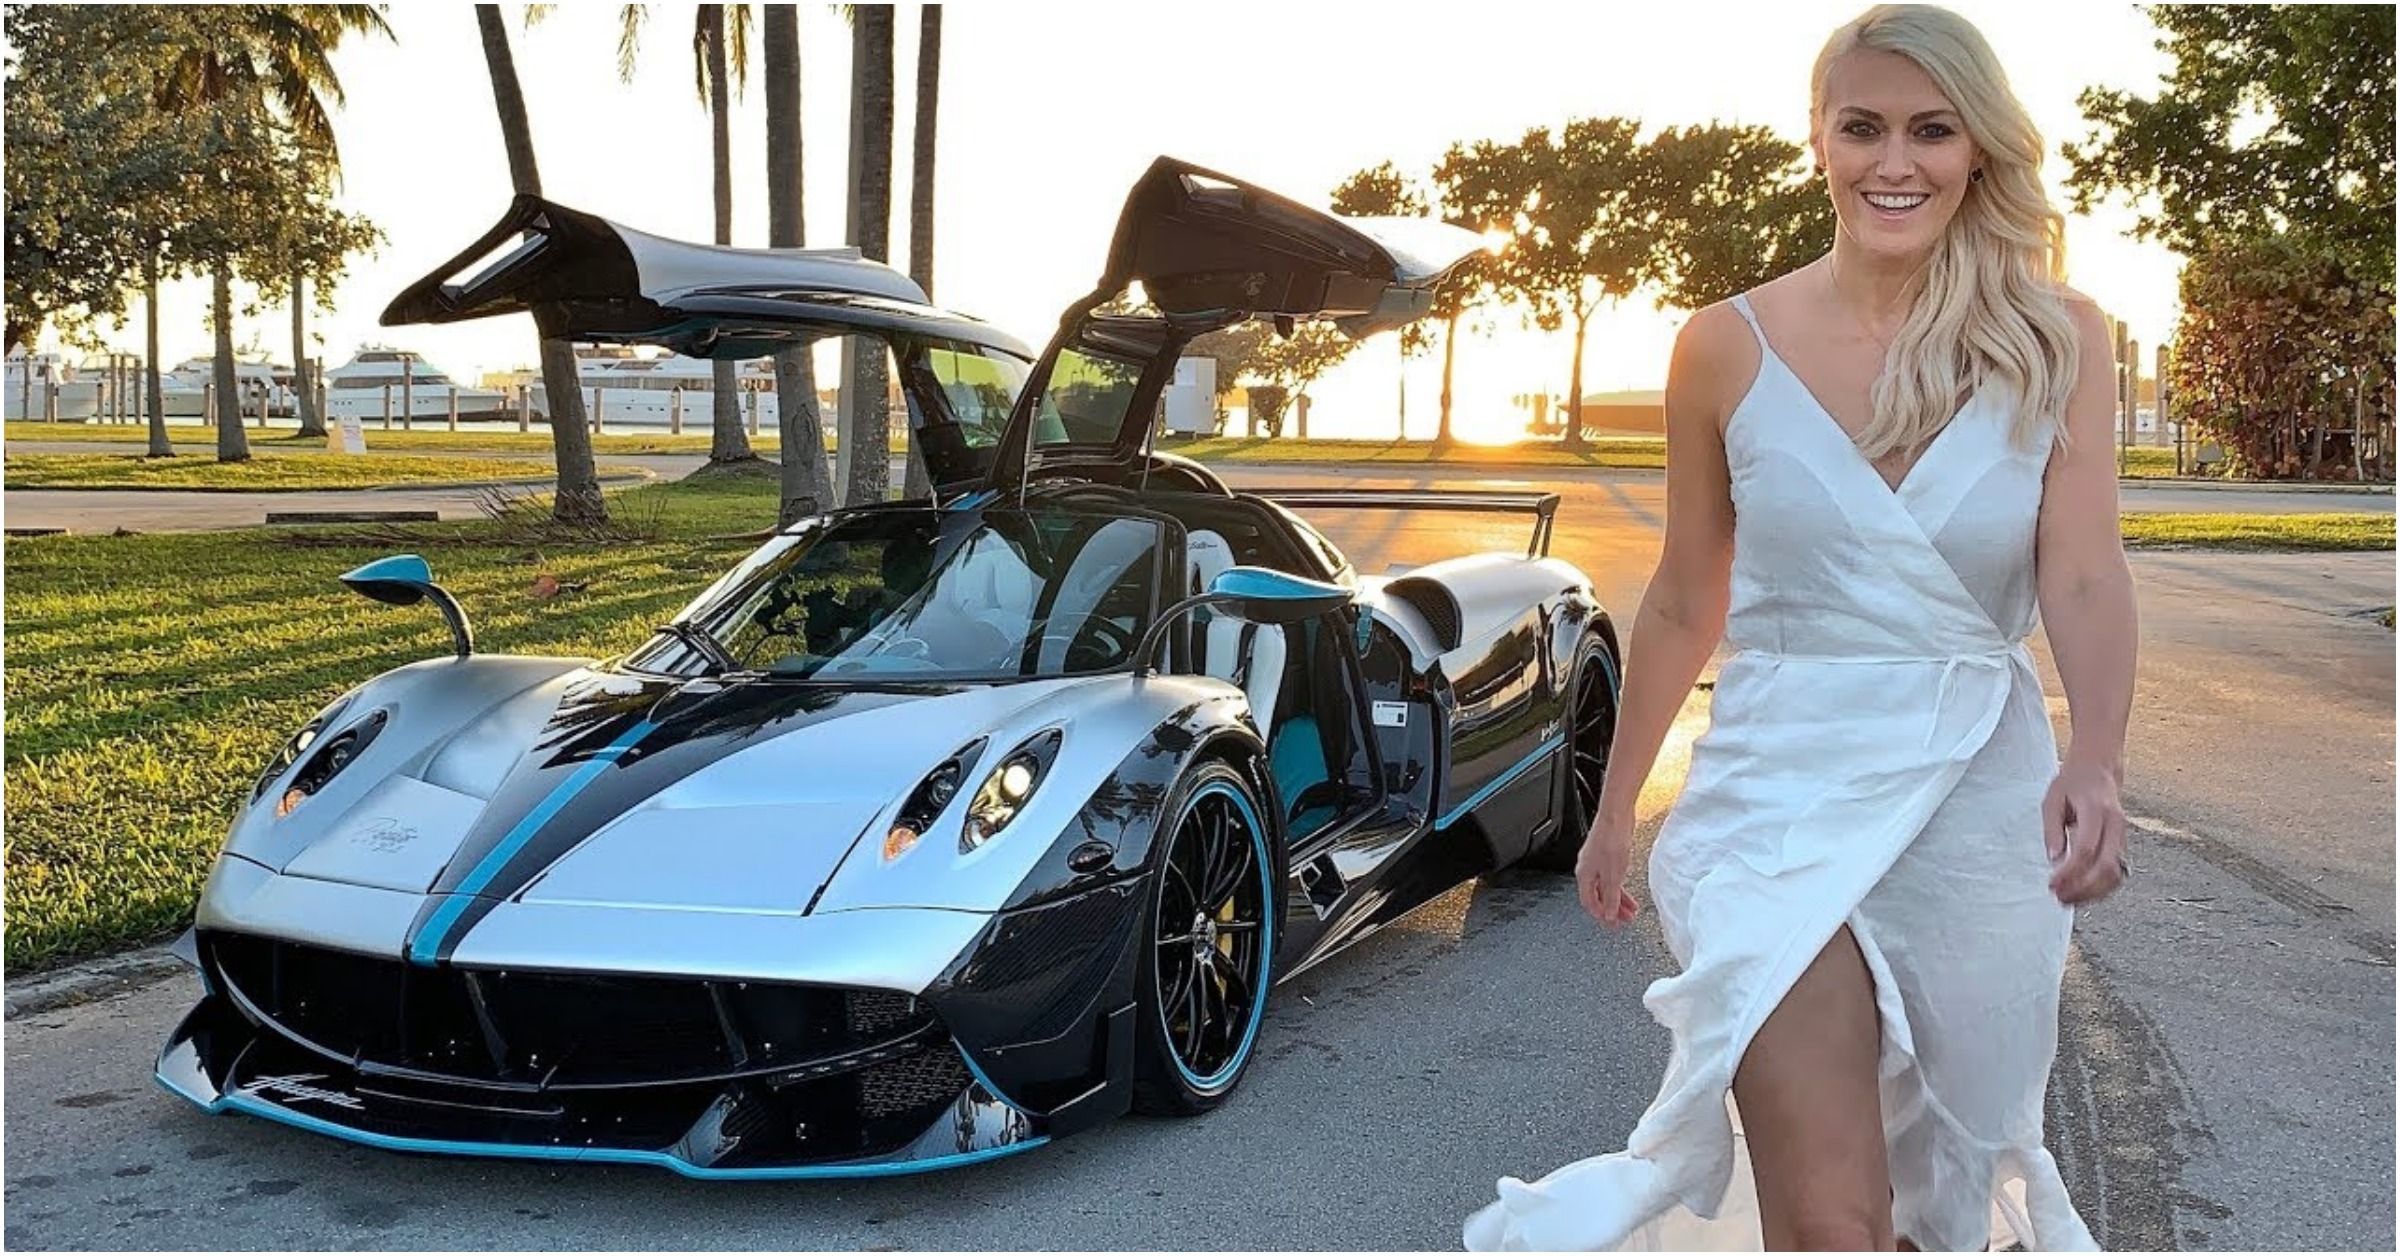 18 Things You Didn't Know About Supercar Blondie